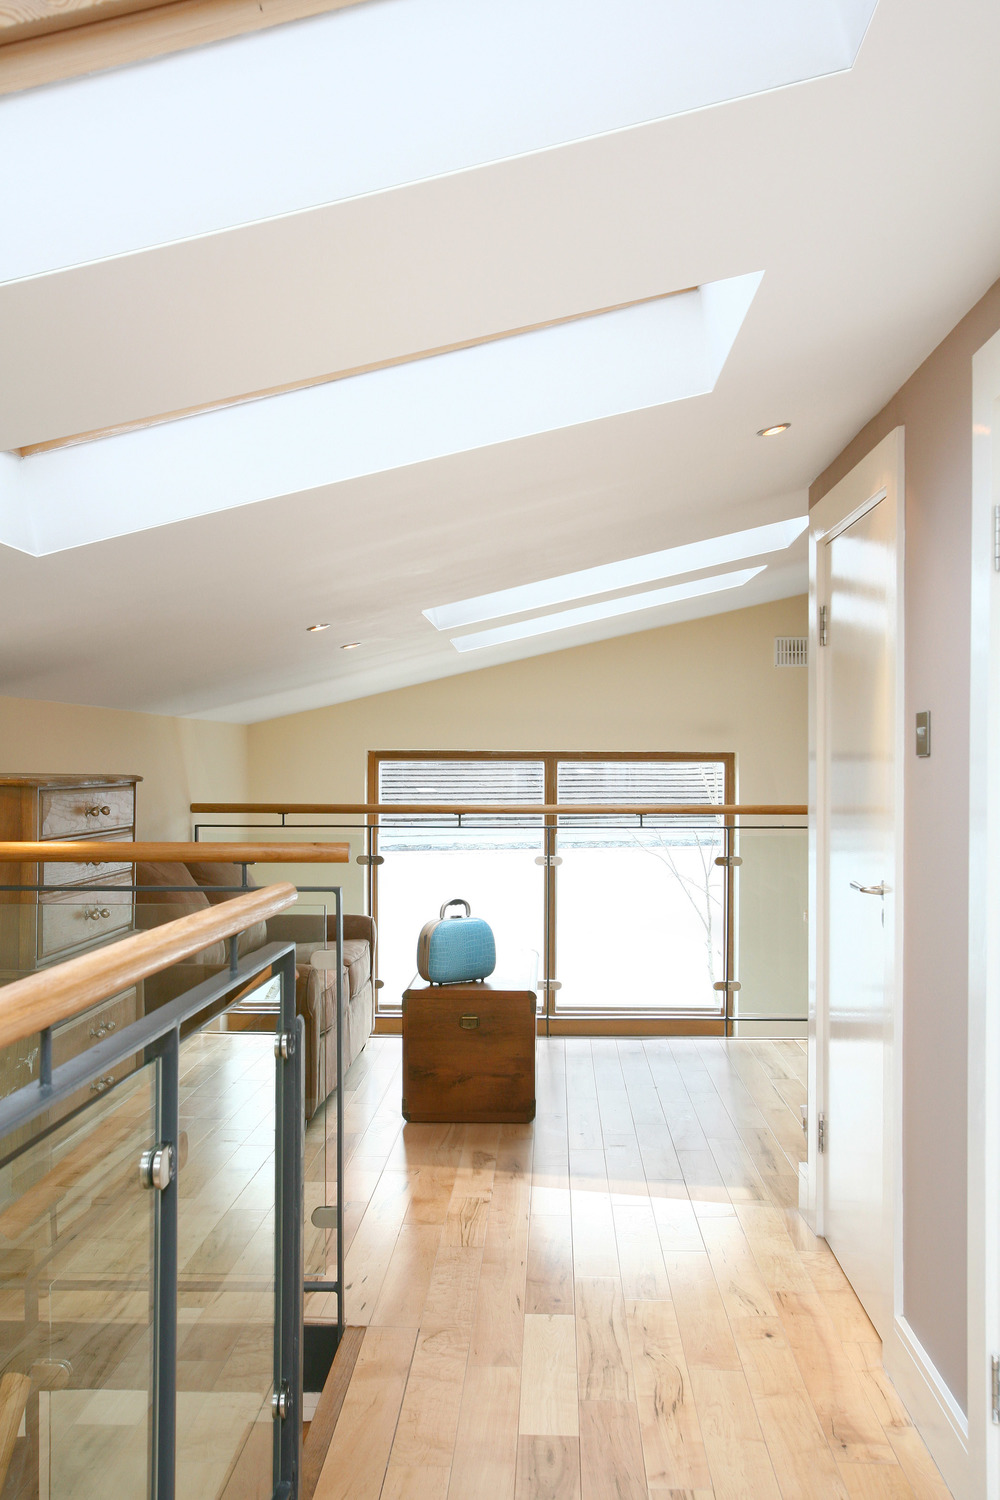 Attic_Loft_Conversion_Light.jpg